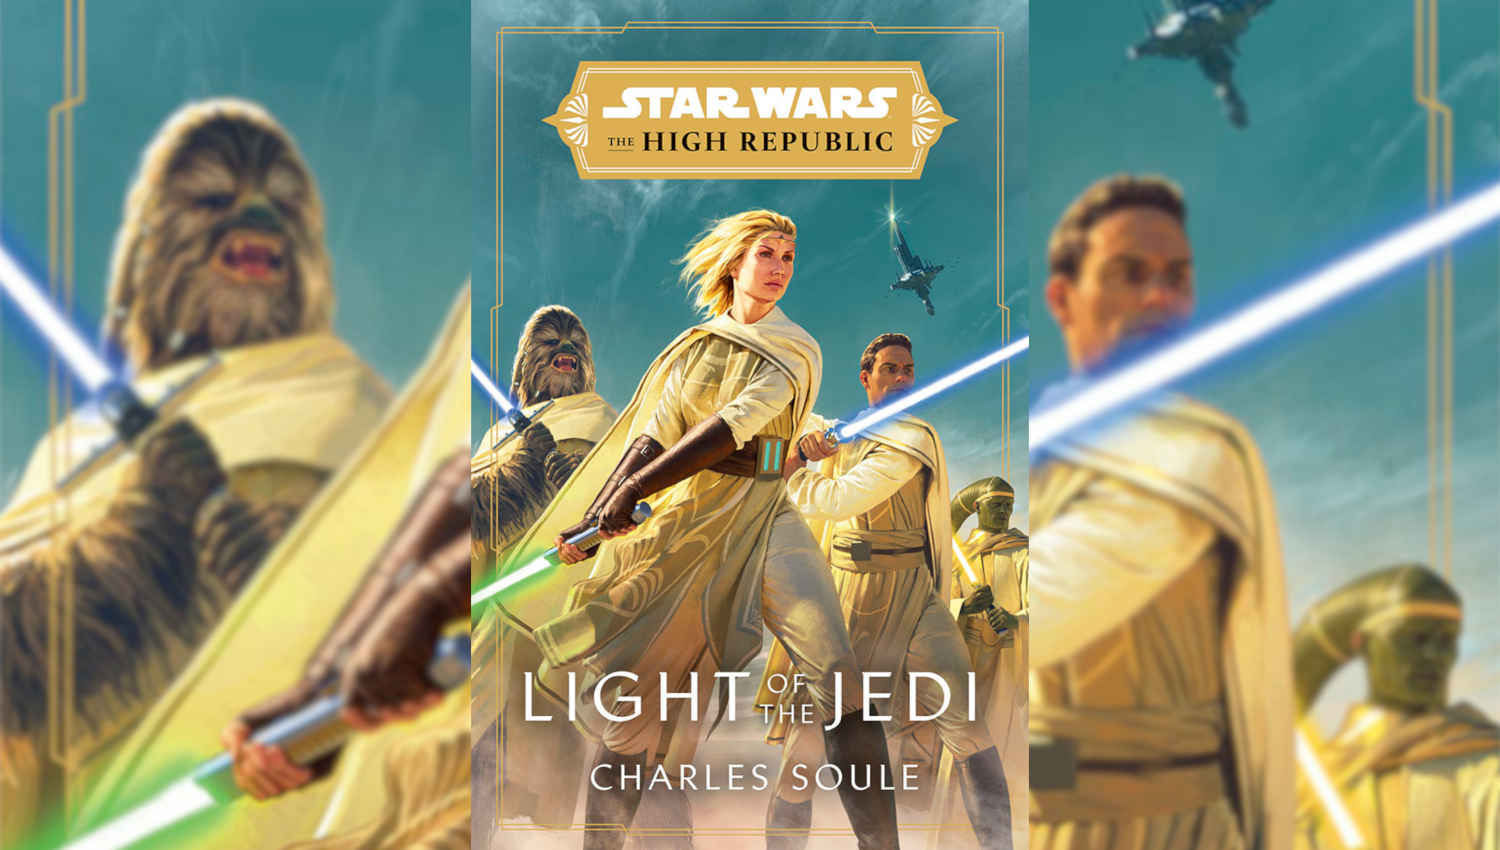 La copertina del primo volume di Star Wars: The High Republic